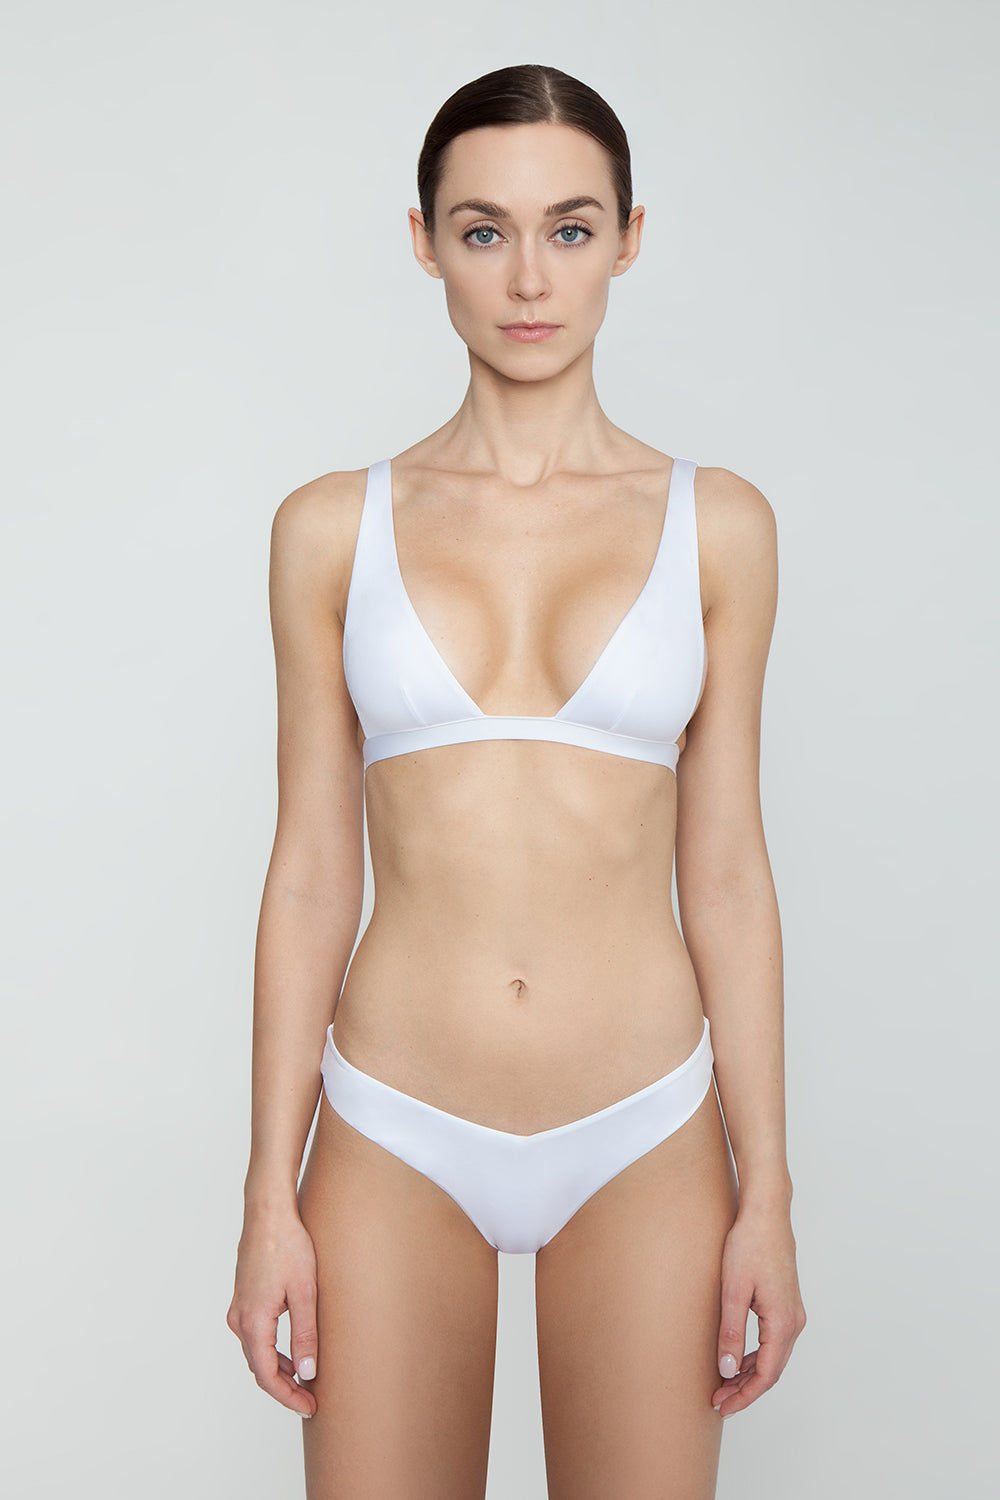 MONICA HANSEN BEACHWEAR Babe Watch Long Triangle Bikini Top - White Bikini Top | White| Monica Hansen Beachwear Babe Watch Long Triangle Bikini Top - White Features:  Plunging U-neckline Long triangle top Small nickel colored metal clasp in back Double fabric on the inside instead of lining Italian fabric 85% Nylon 15% Elastane Manufactured in Italy Hand wash cold.  Dry Flat Front View